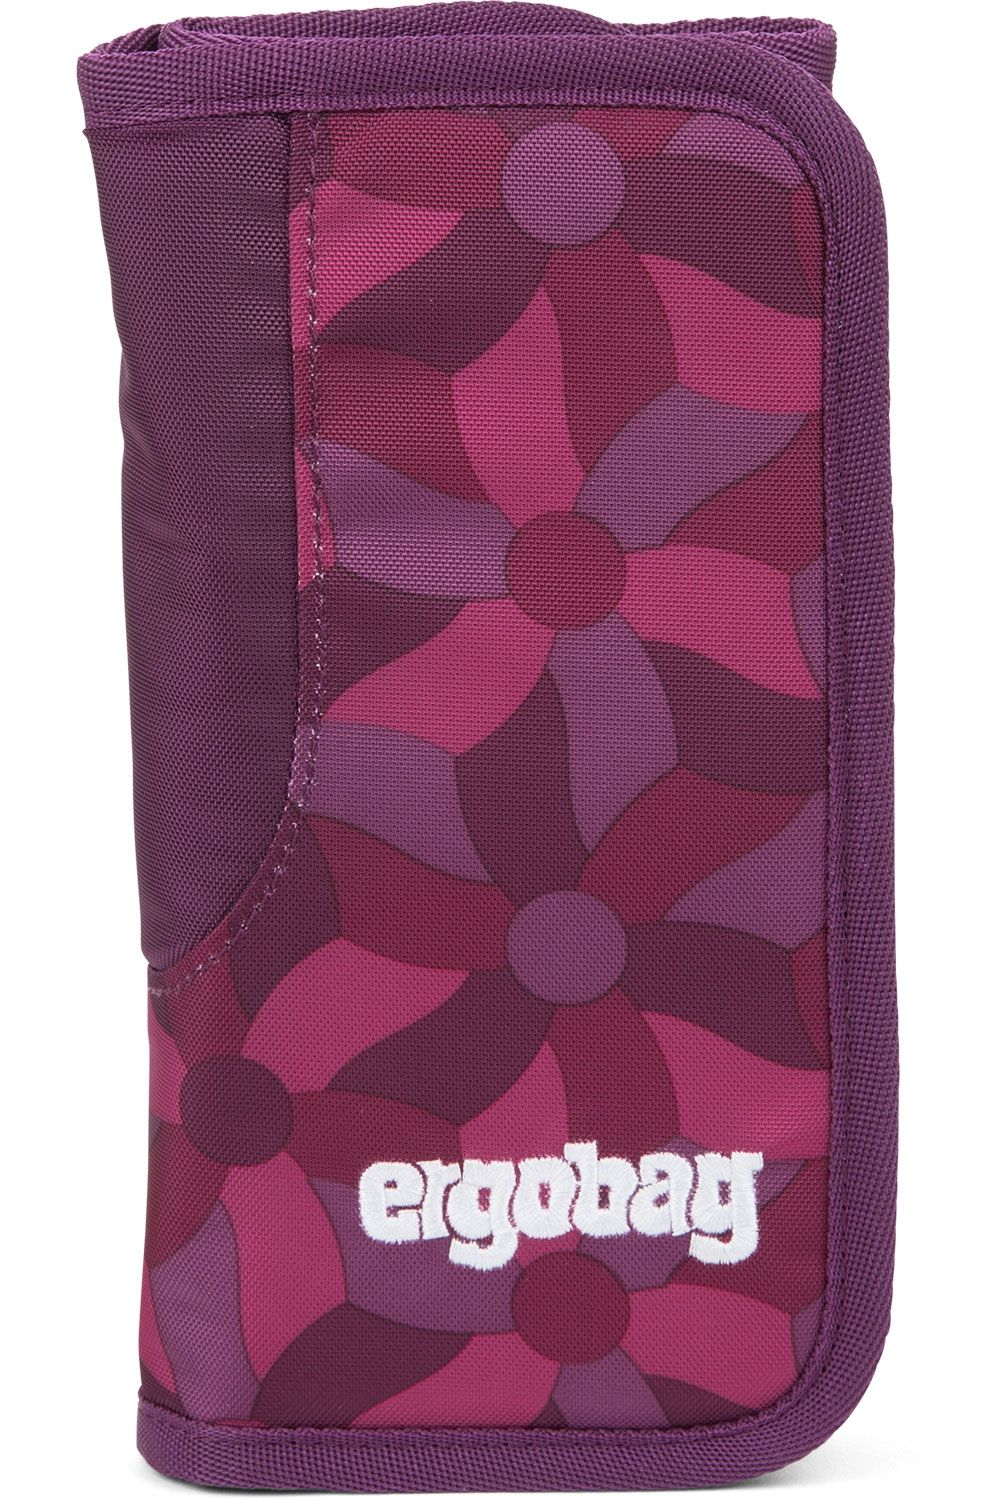 Image of Rullepenalhus fra Ergobag - Flower Wheel Purple (ERG-RSP-001-9E3)